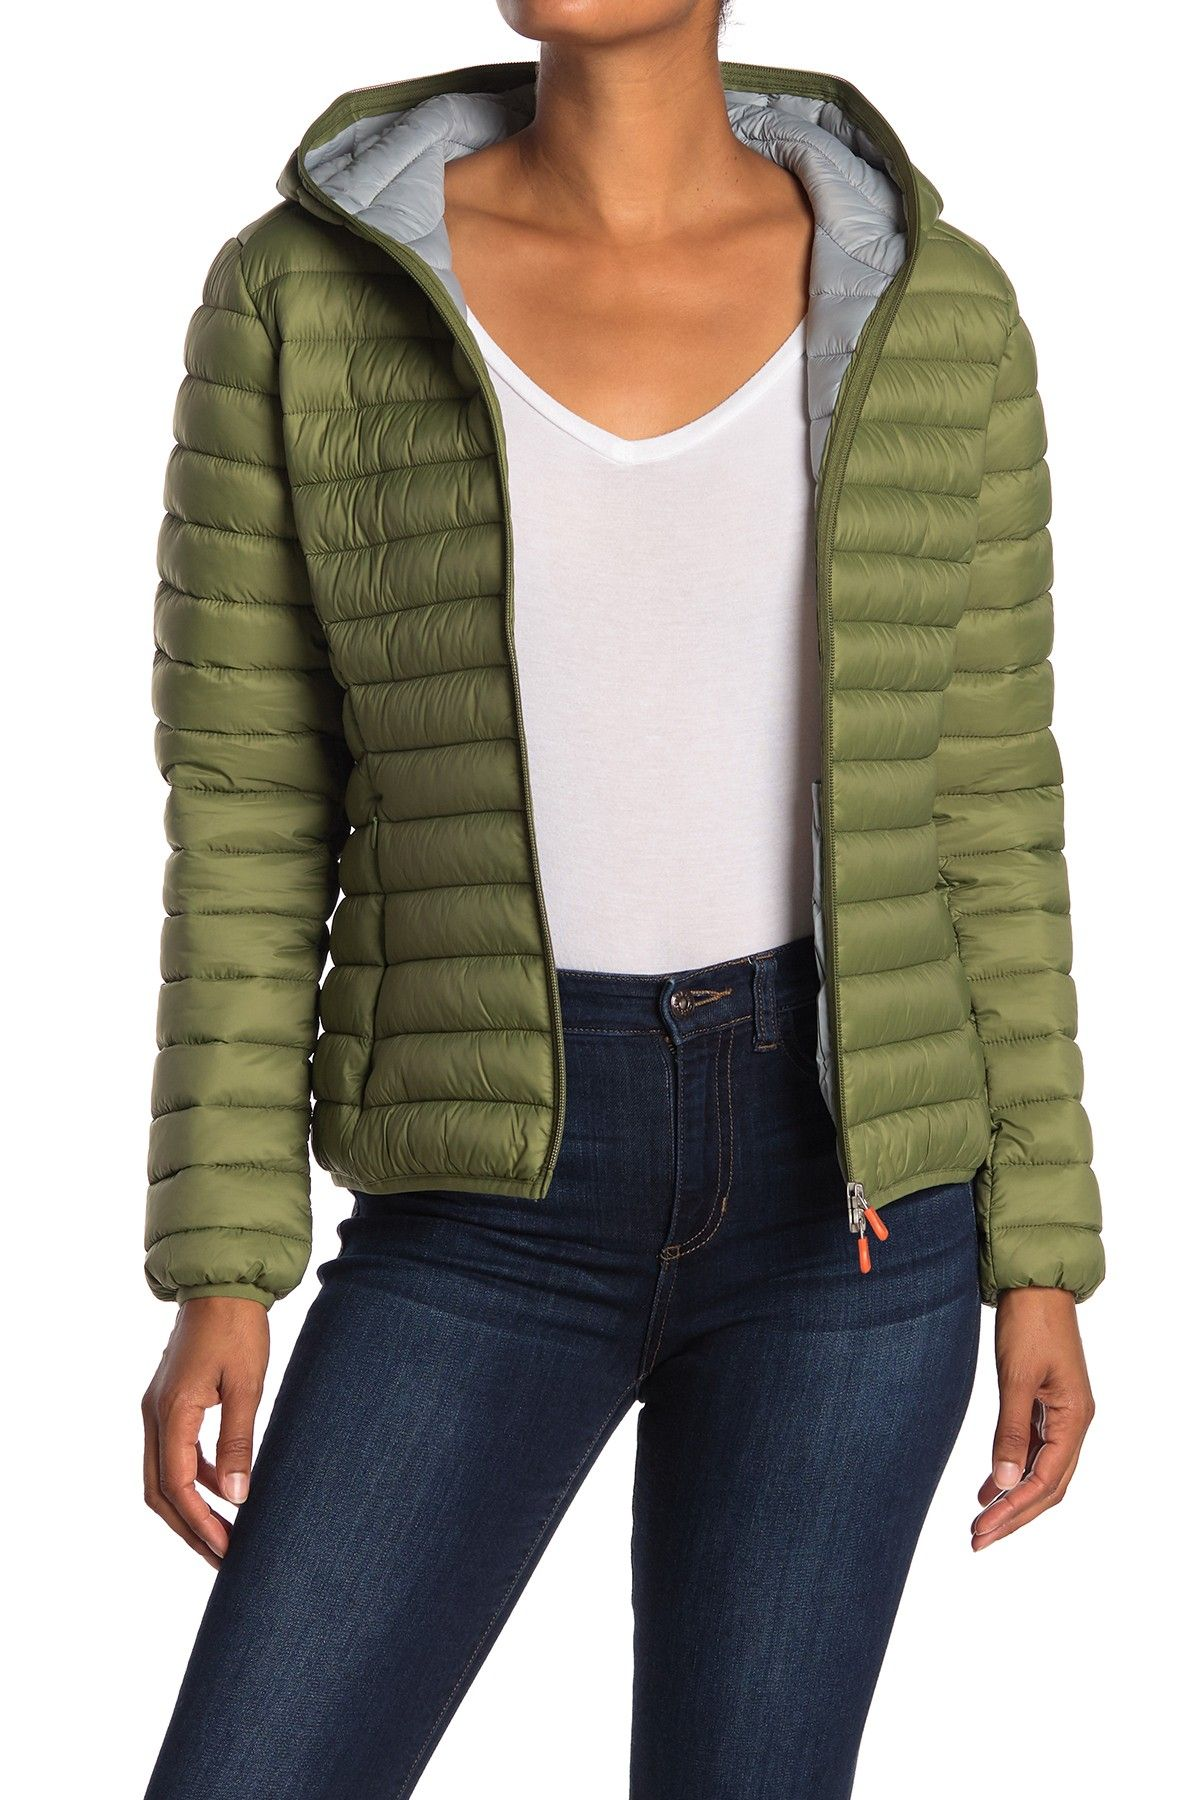 Save The Duck Giga Hooded Puffer Jacket Nordstrom Rack Jackets Puffer Jackets Save The Duck [ 1800 x 1200 Pixel ]